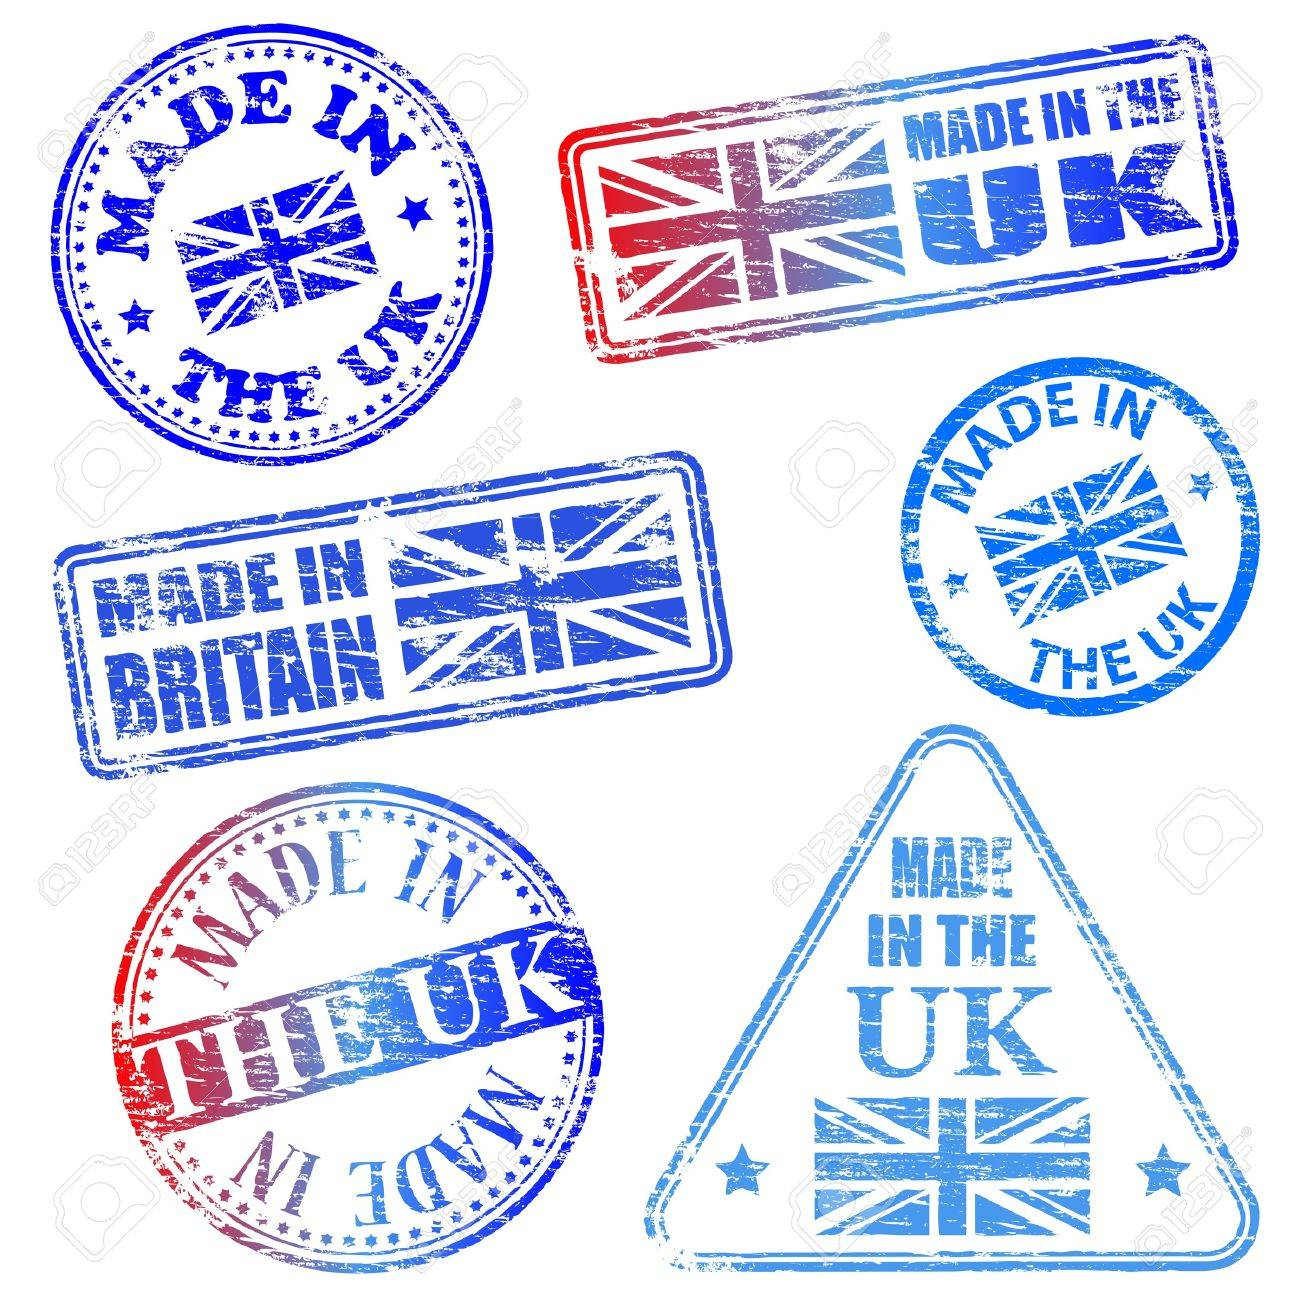 Made in the UK. Rubber stamp illustrations - 17373402